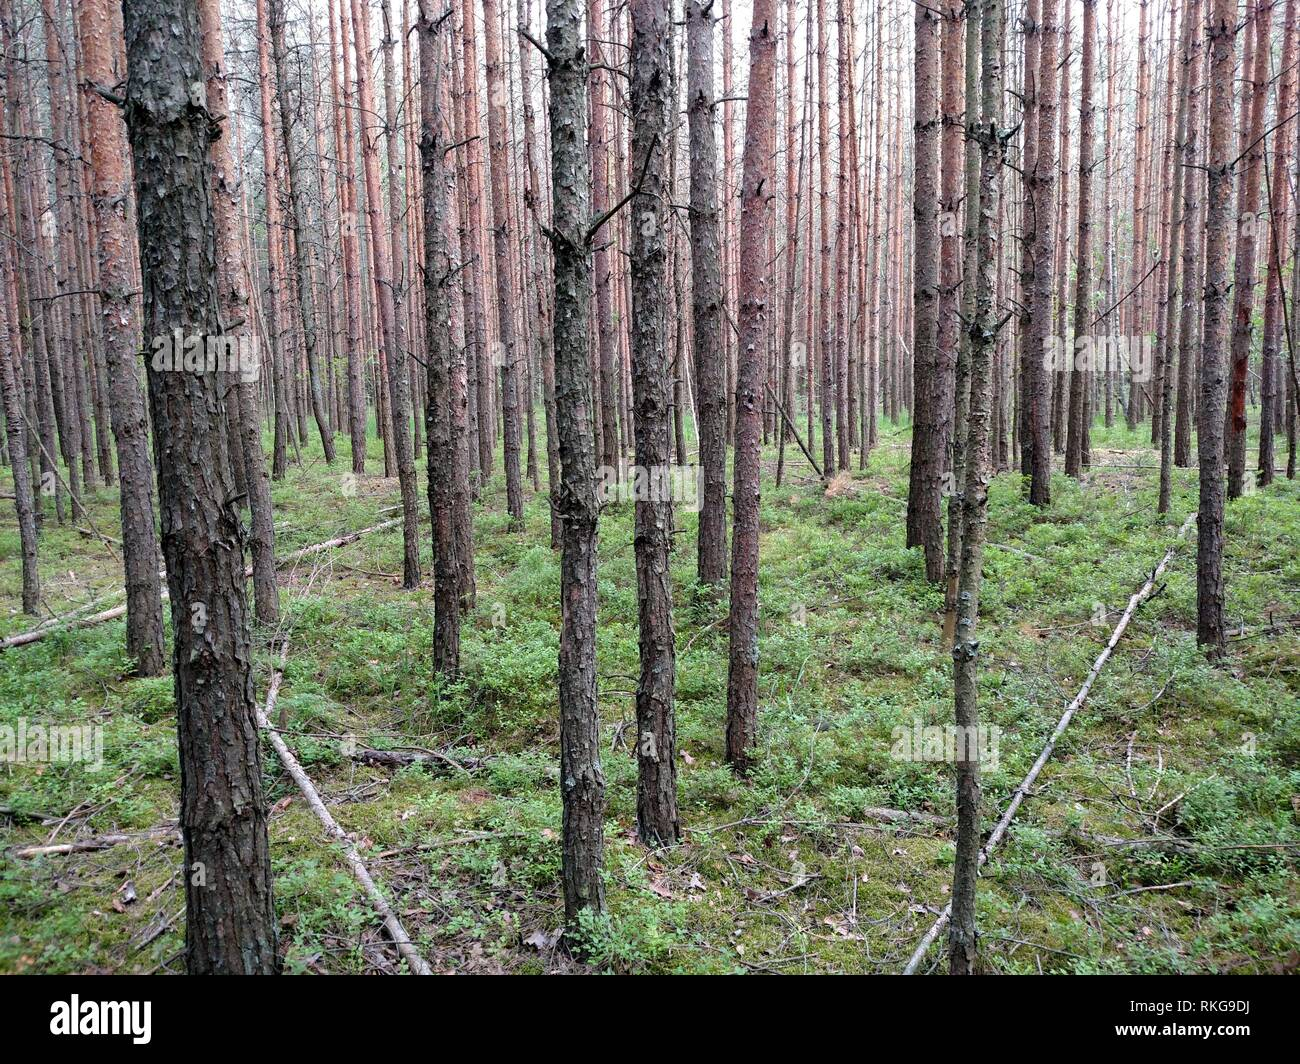 Dark Forest Background Ukraine Forest Trees Background Nature Stock Photo Alamy Tons of awesome dark forest wallpapers to download for free. https www alamy com dark forest background ukraine forest trees background nature image235771918 html